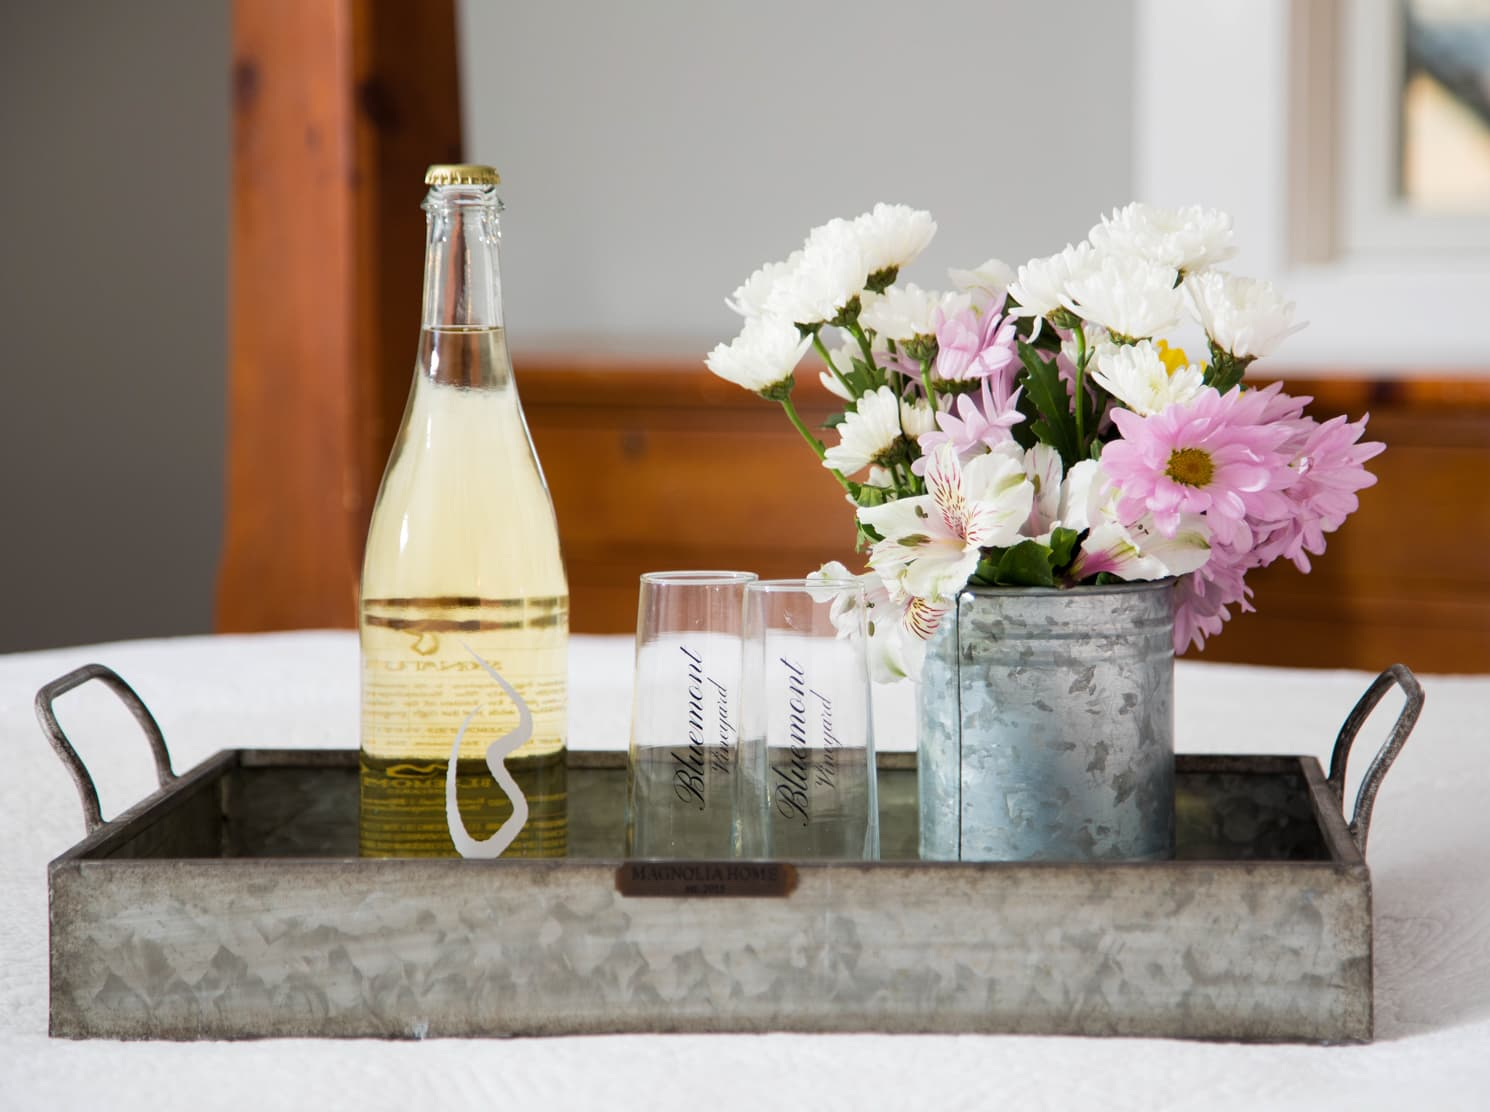 Bluemont Vineyard sparkling wine with two flutes and a bouquet of flowers